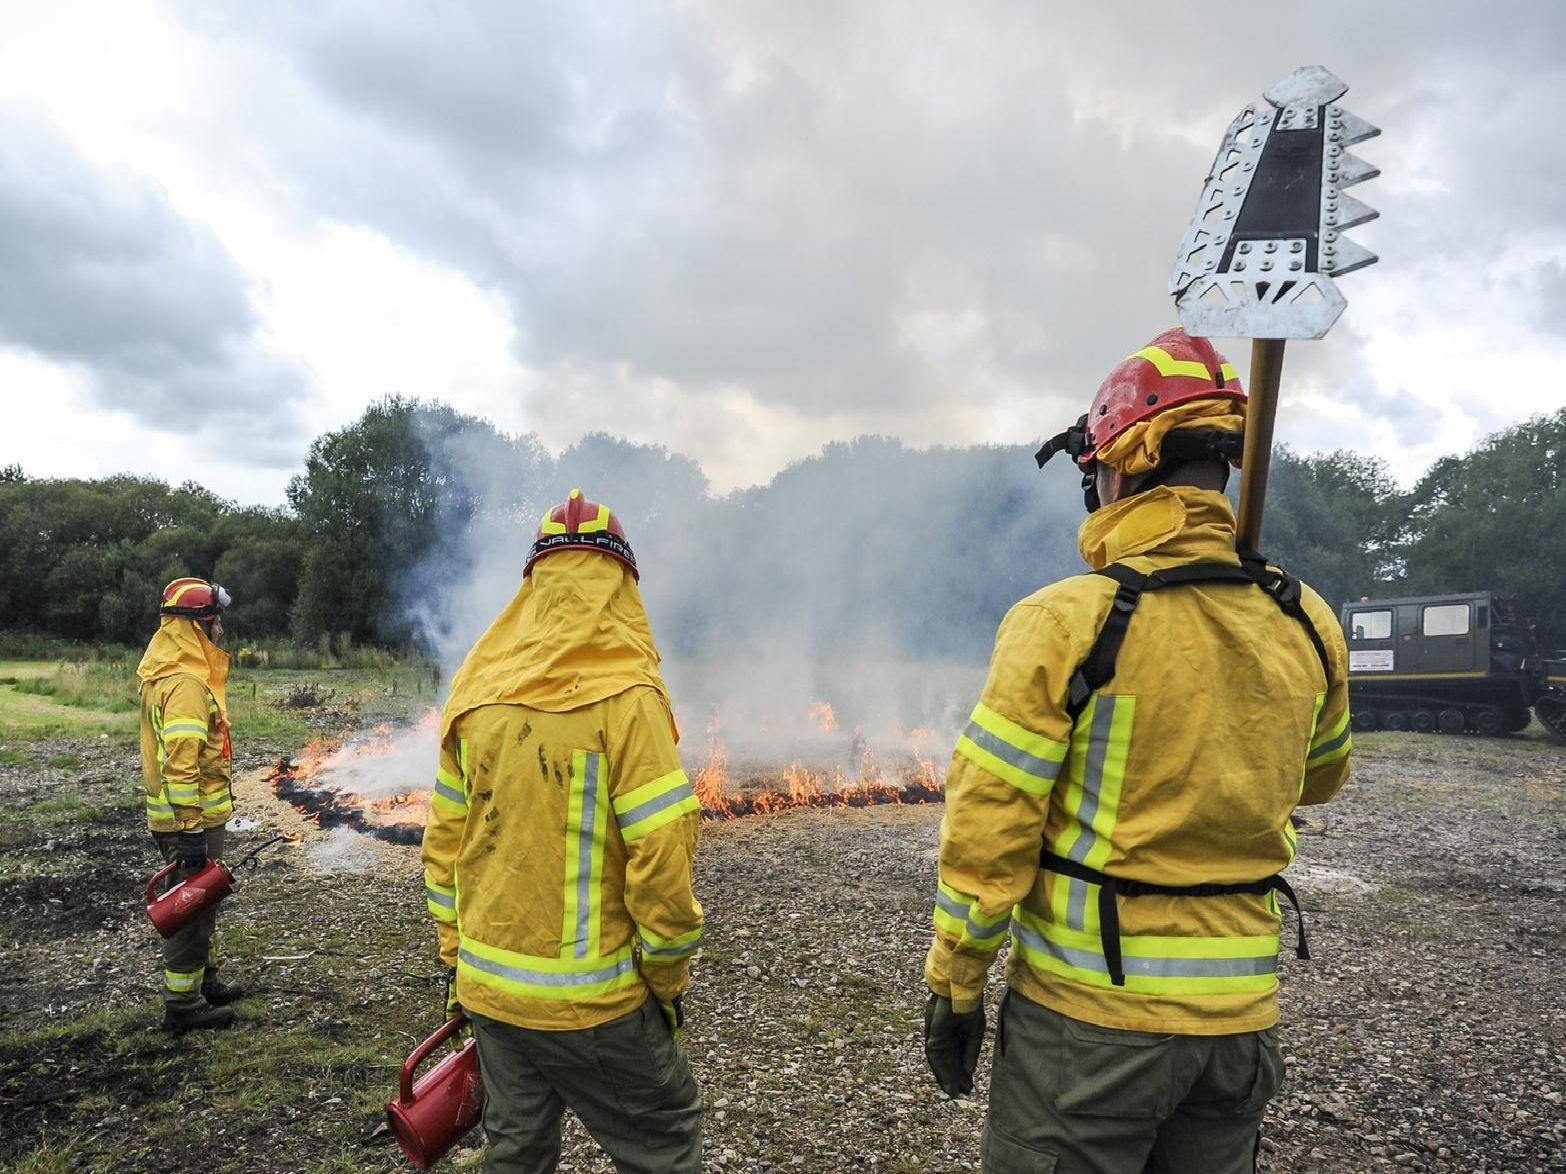 A demonstration was held at the fire services training centre in Chorley yesterday, with the seminar attended by experts from around the world.